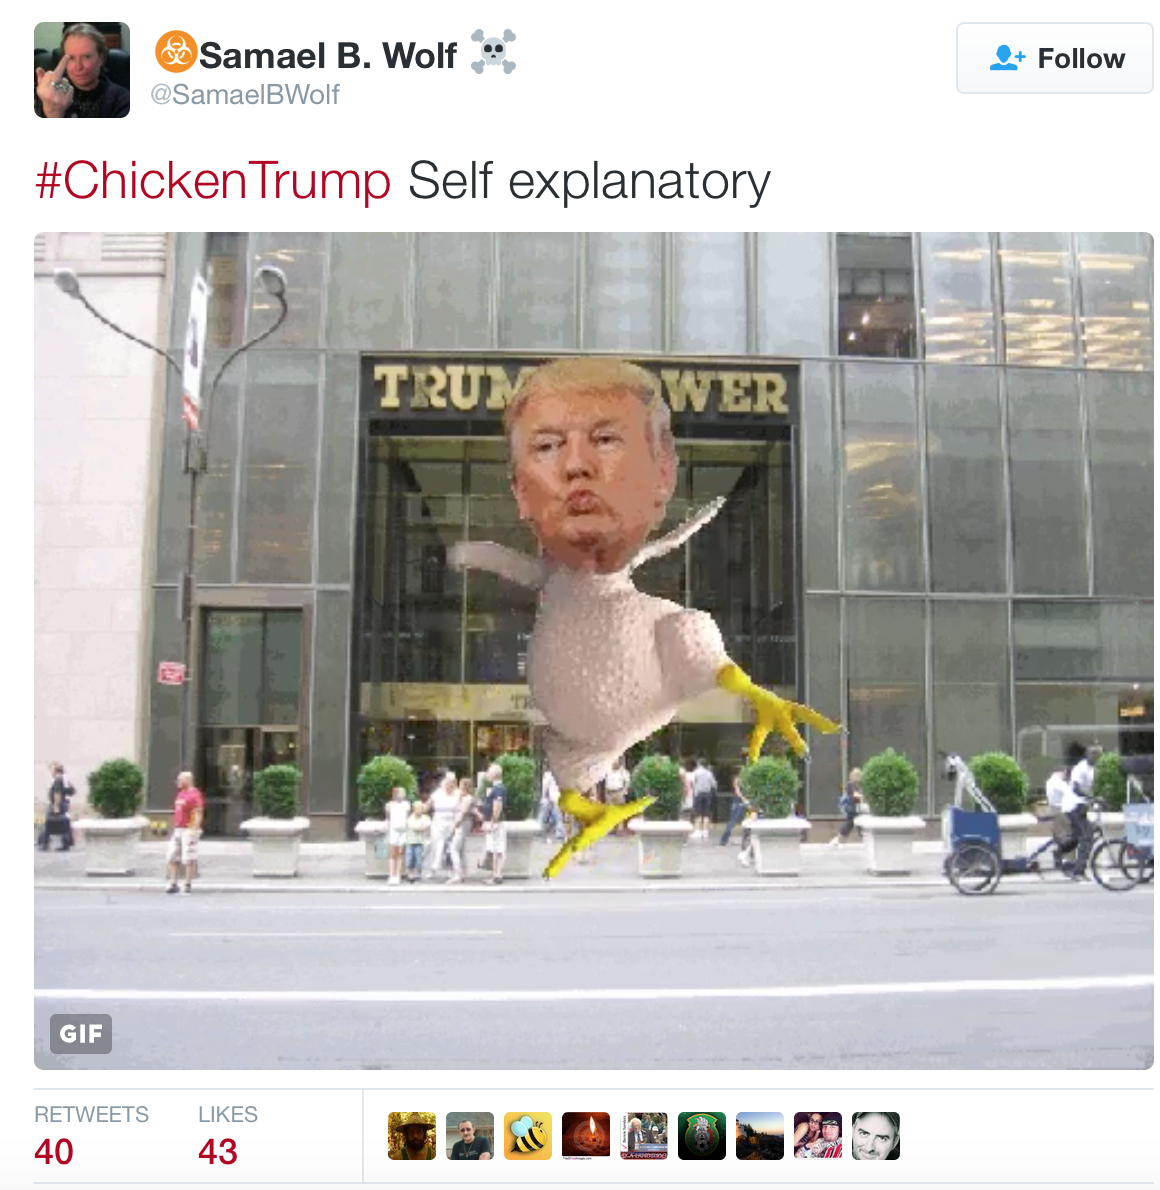 ChickenTrump_tweet.png